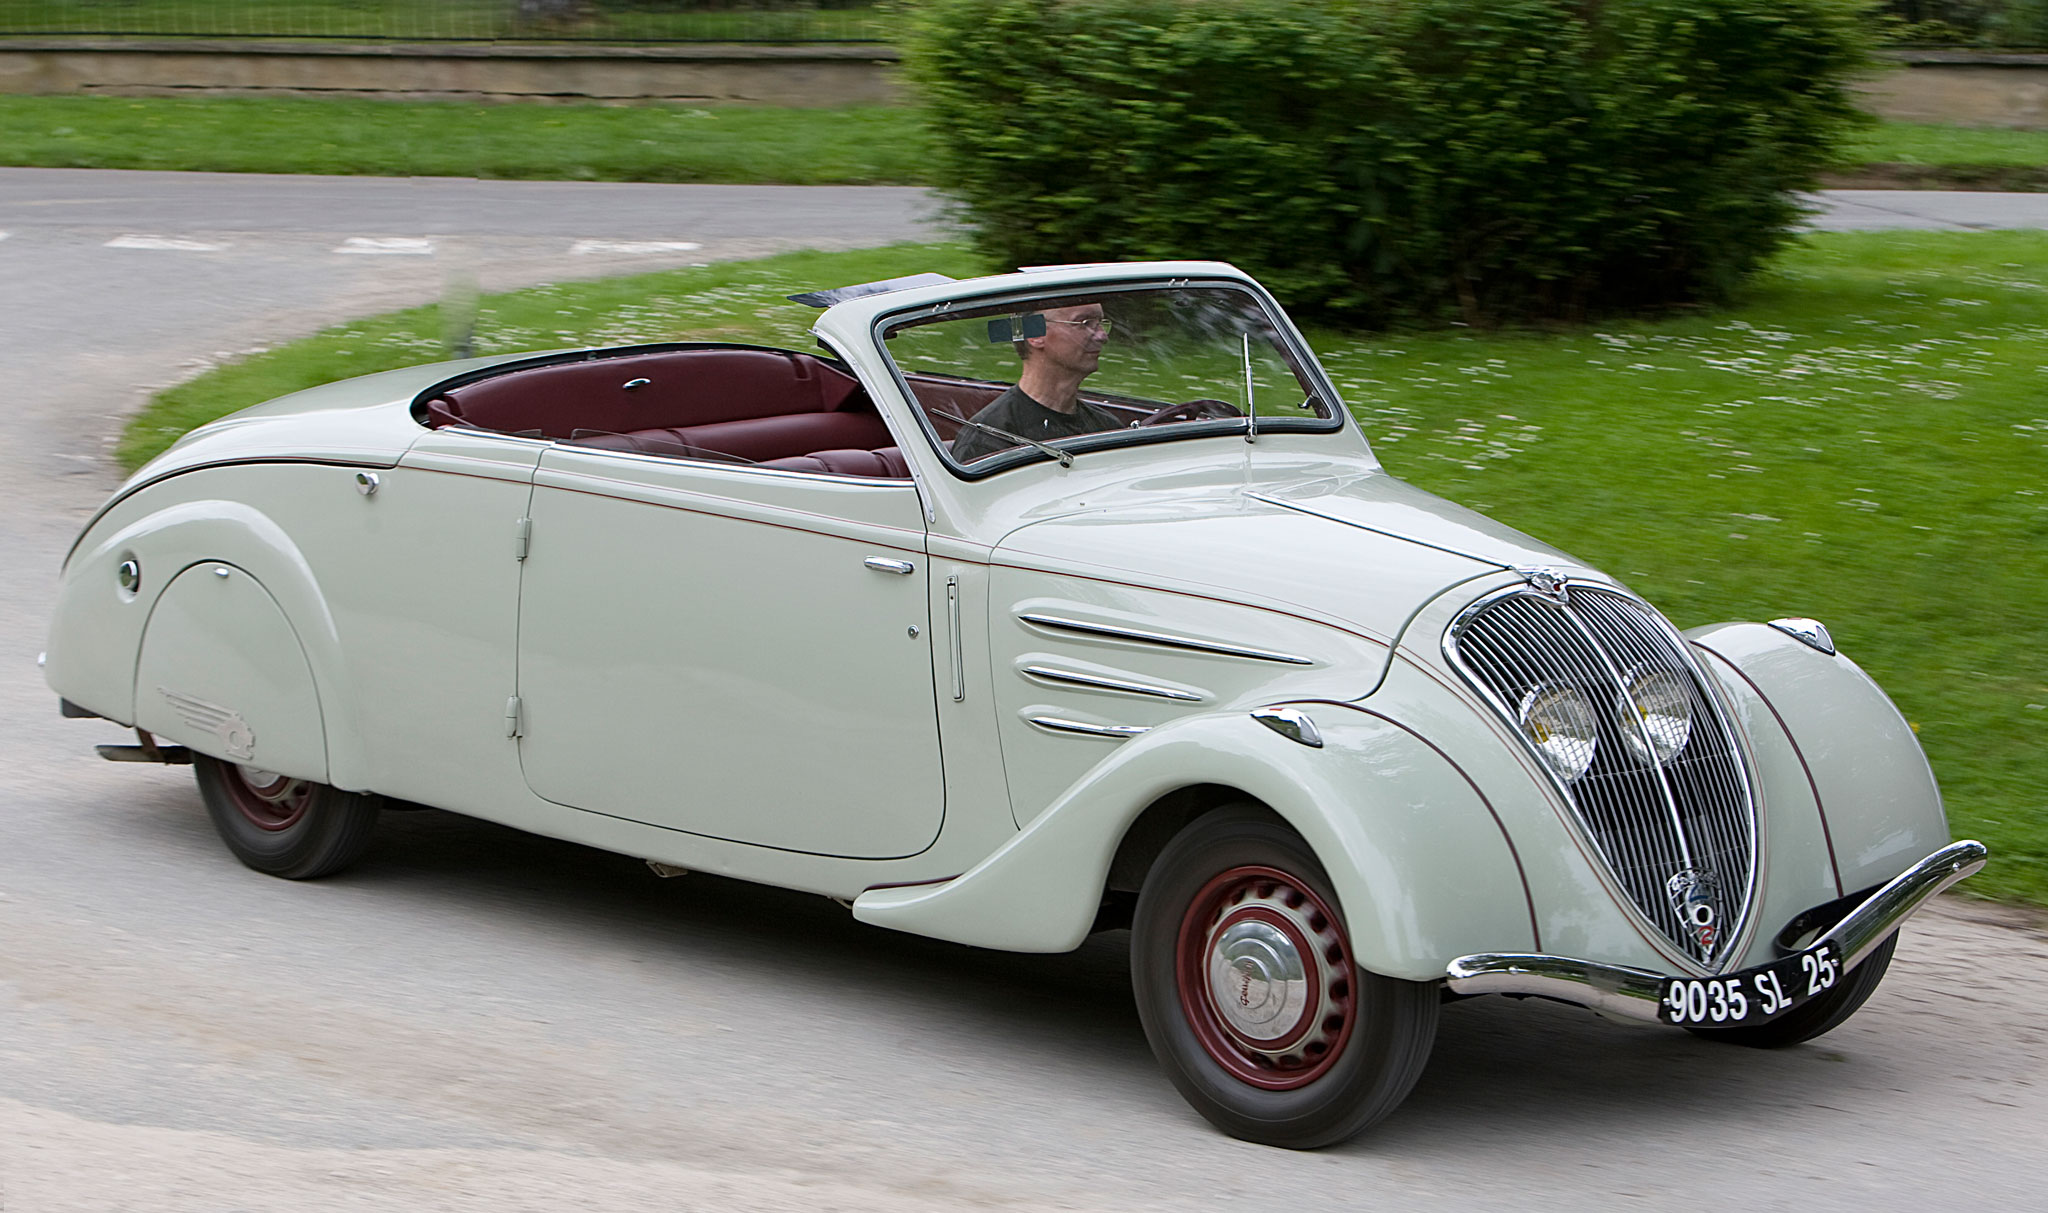 Remembering The Peugeot 402 On Its 75th Anniversary